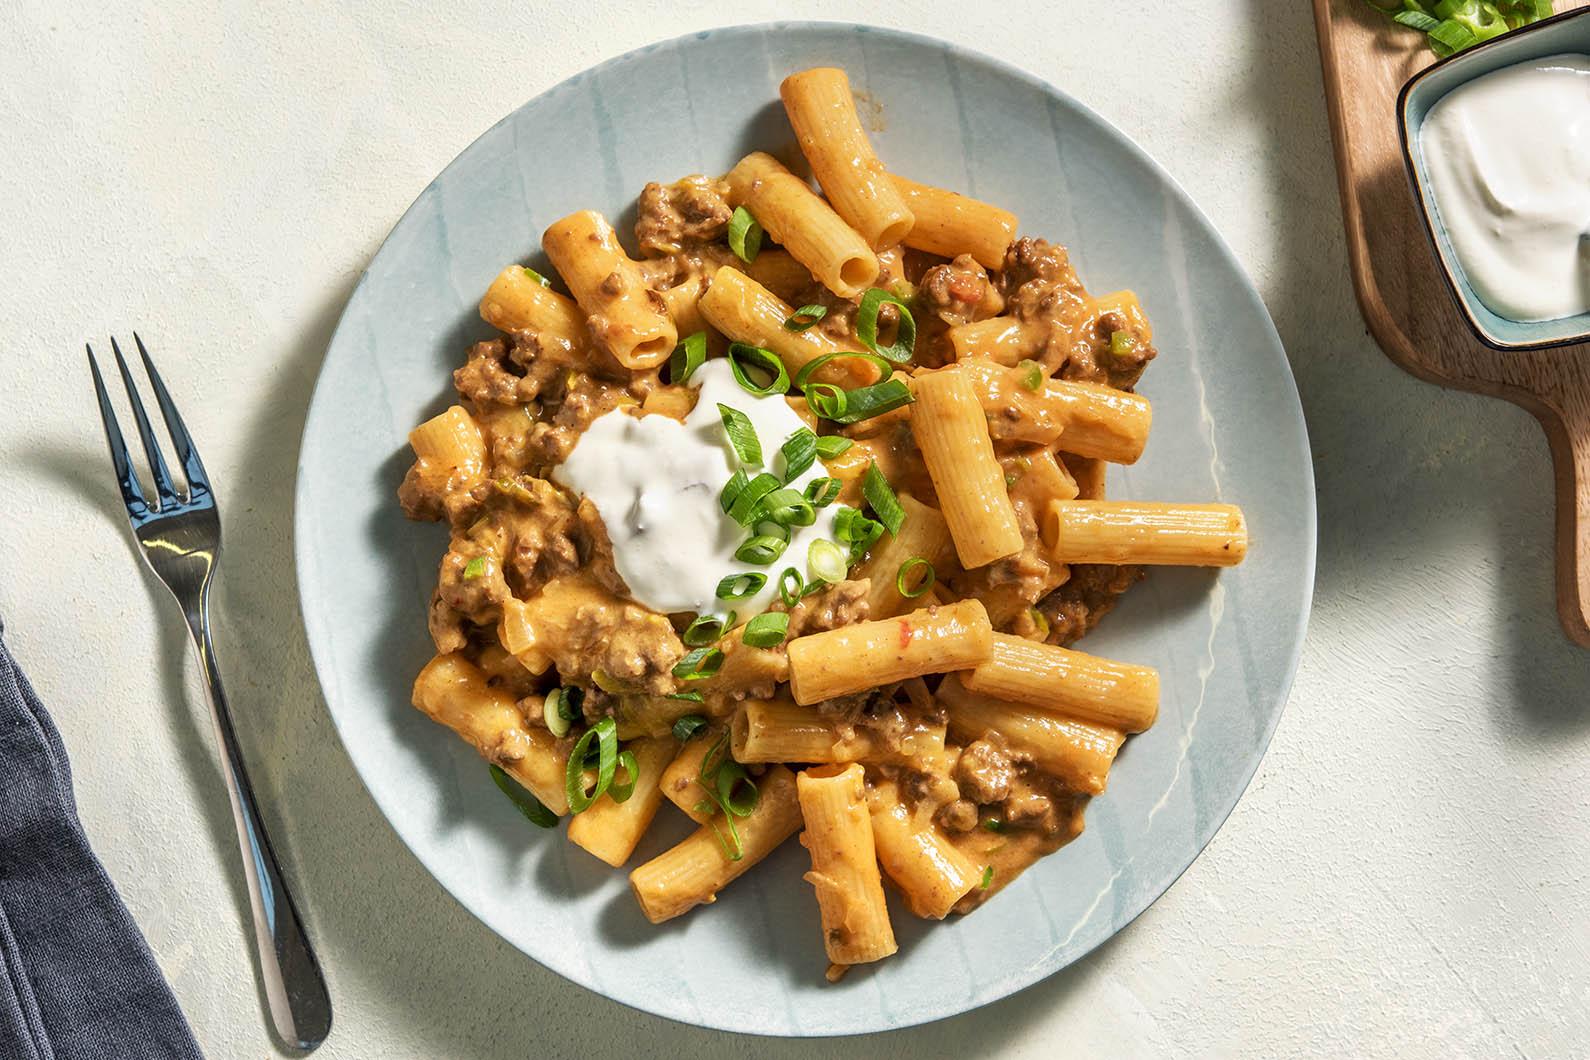 Tex-Mex Beef Mac and Cheese with poblano peppers